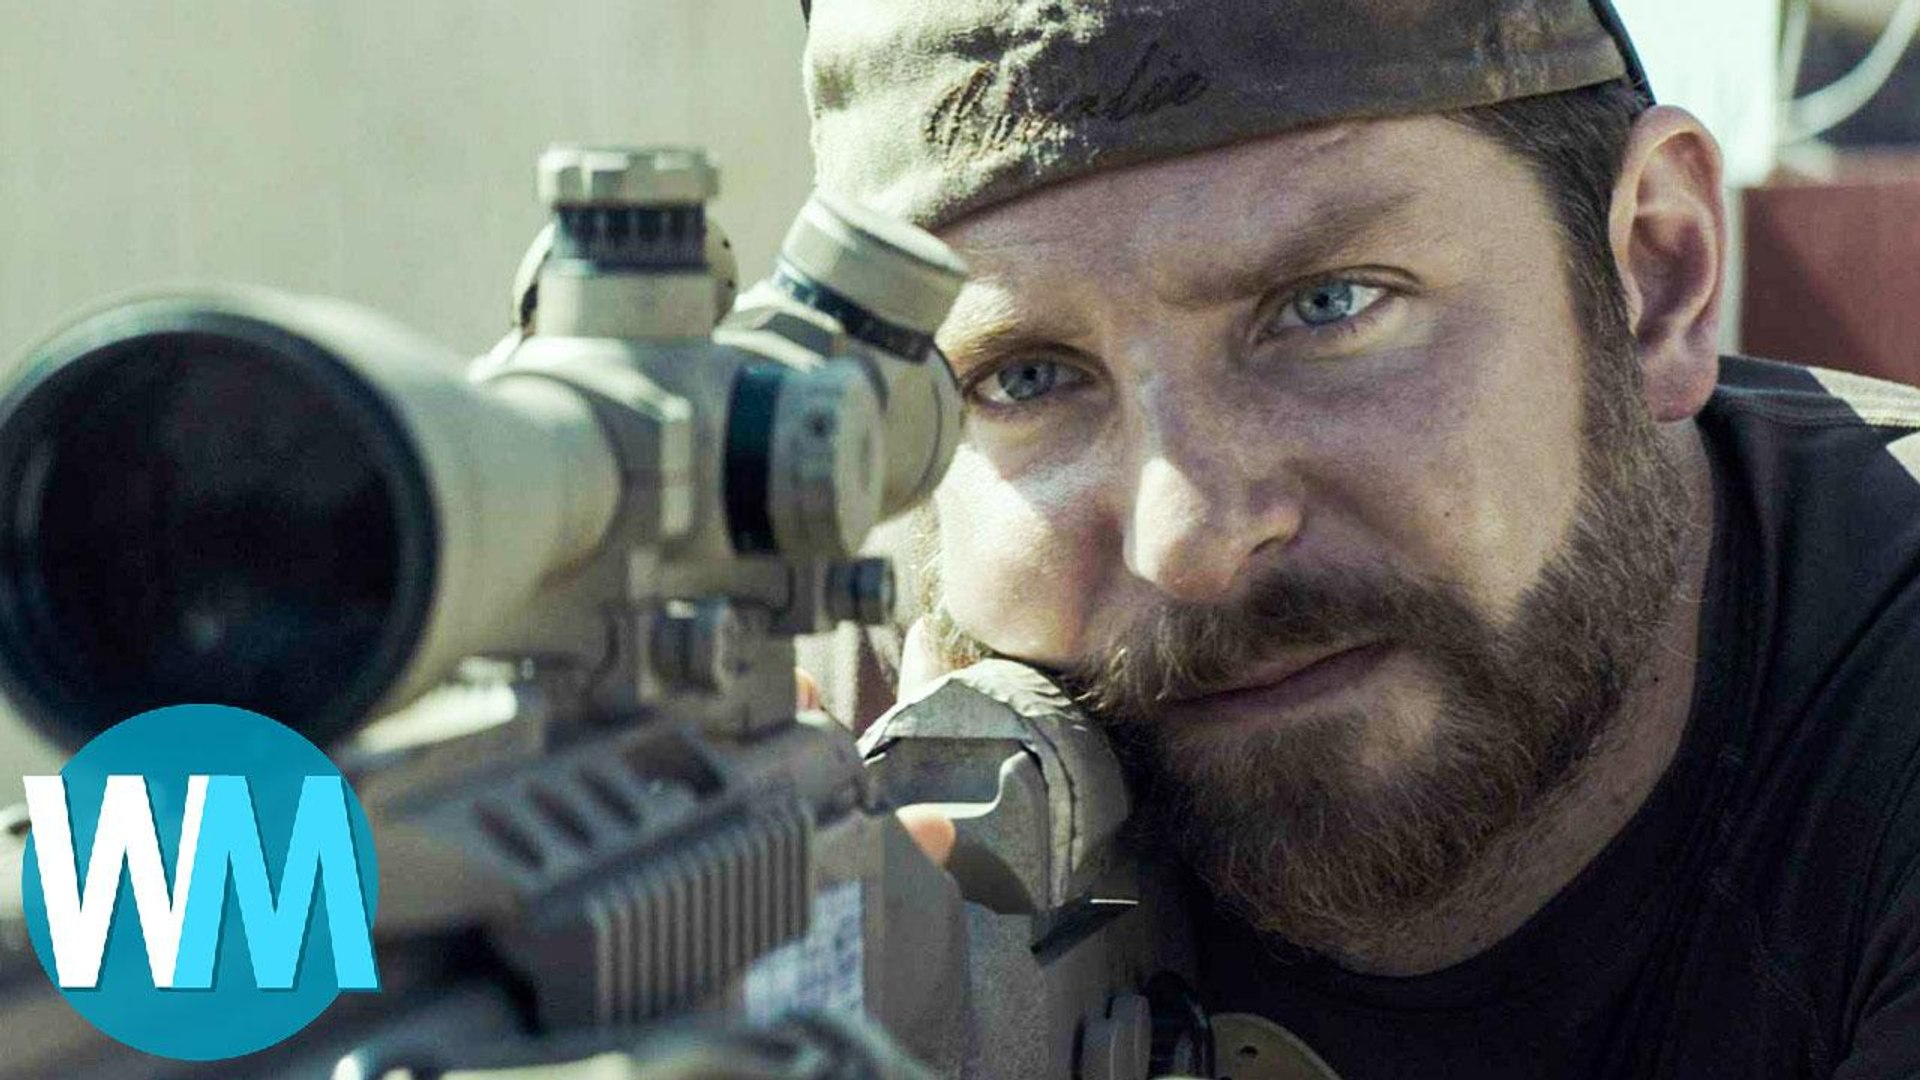 Top 10 Iraq War Movies And TV Shows